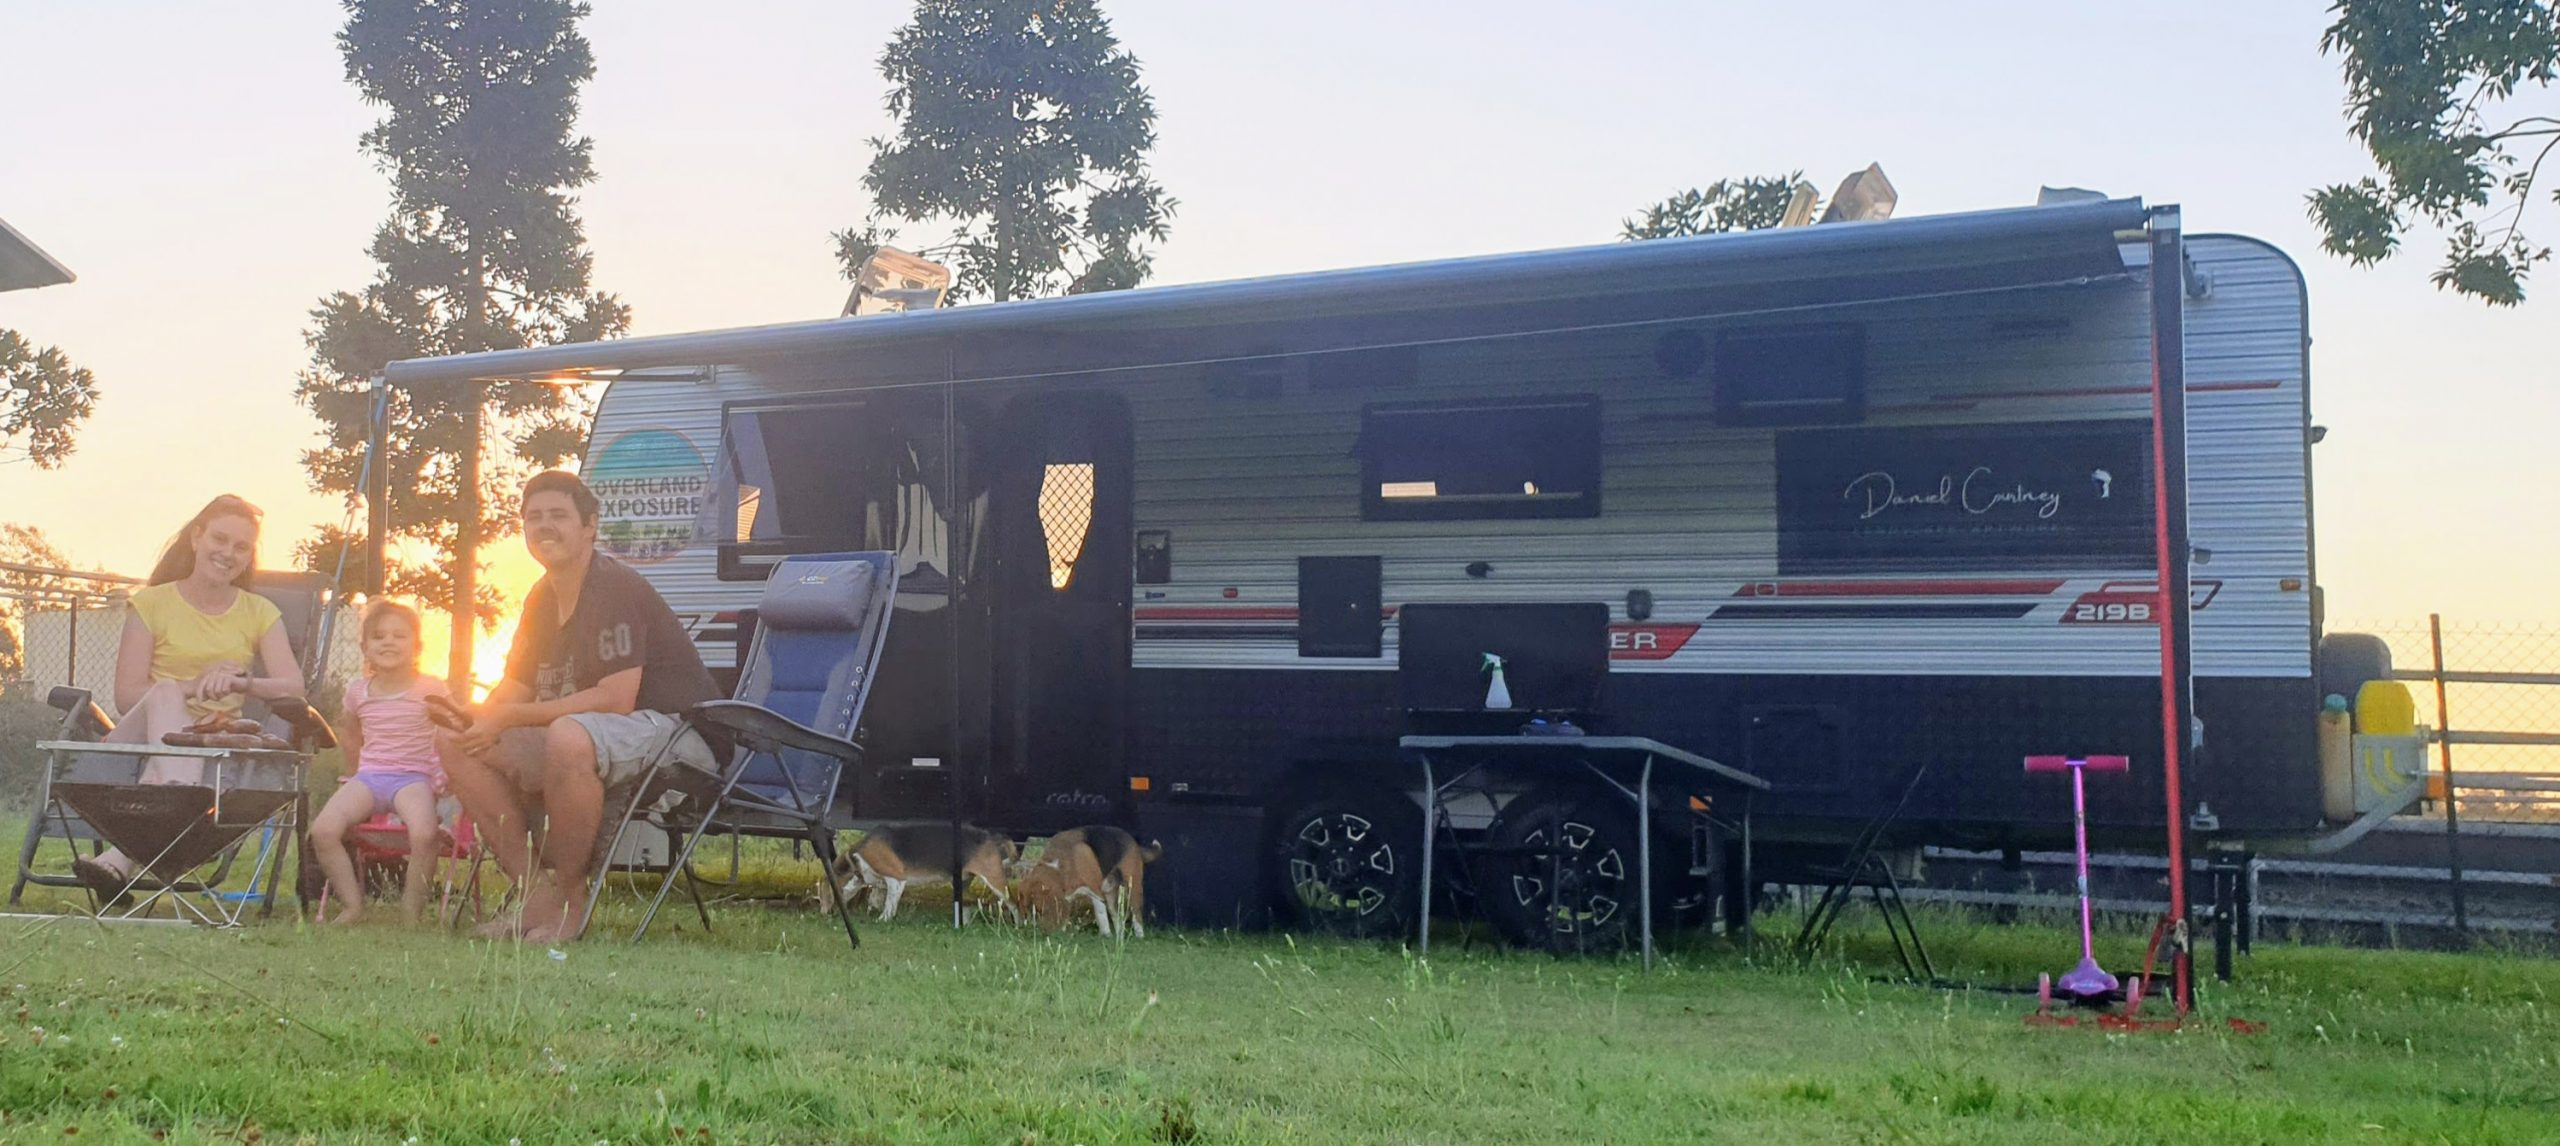 Caravan, Motorhome, Bus, Expedition Truck, Camper trailer? WHICH ONE WE CHOSE AND WHY!